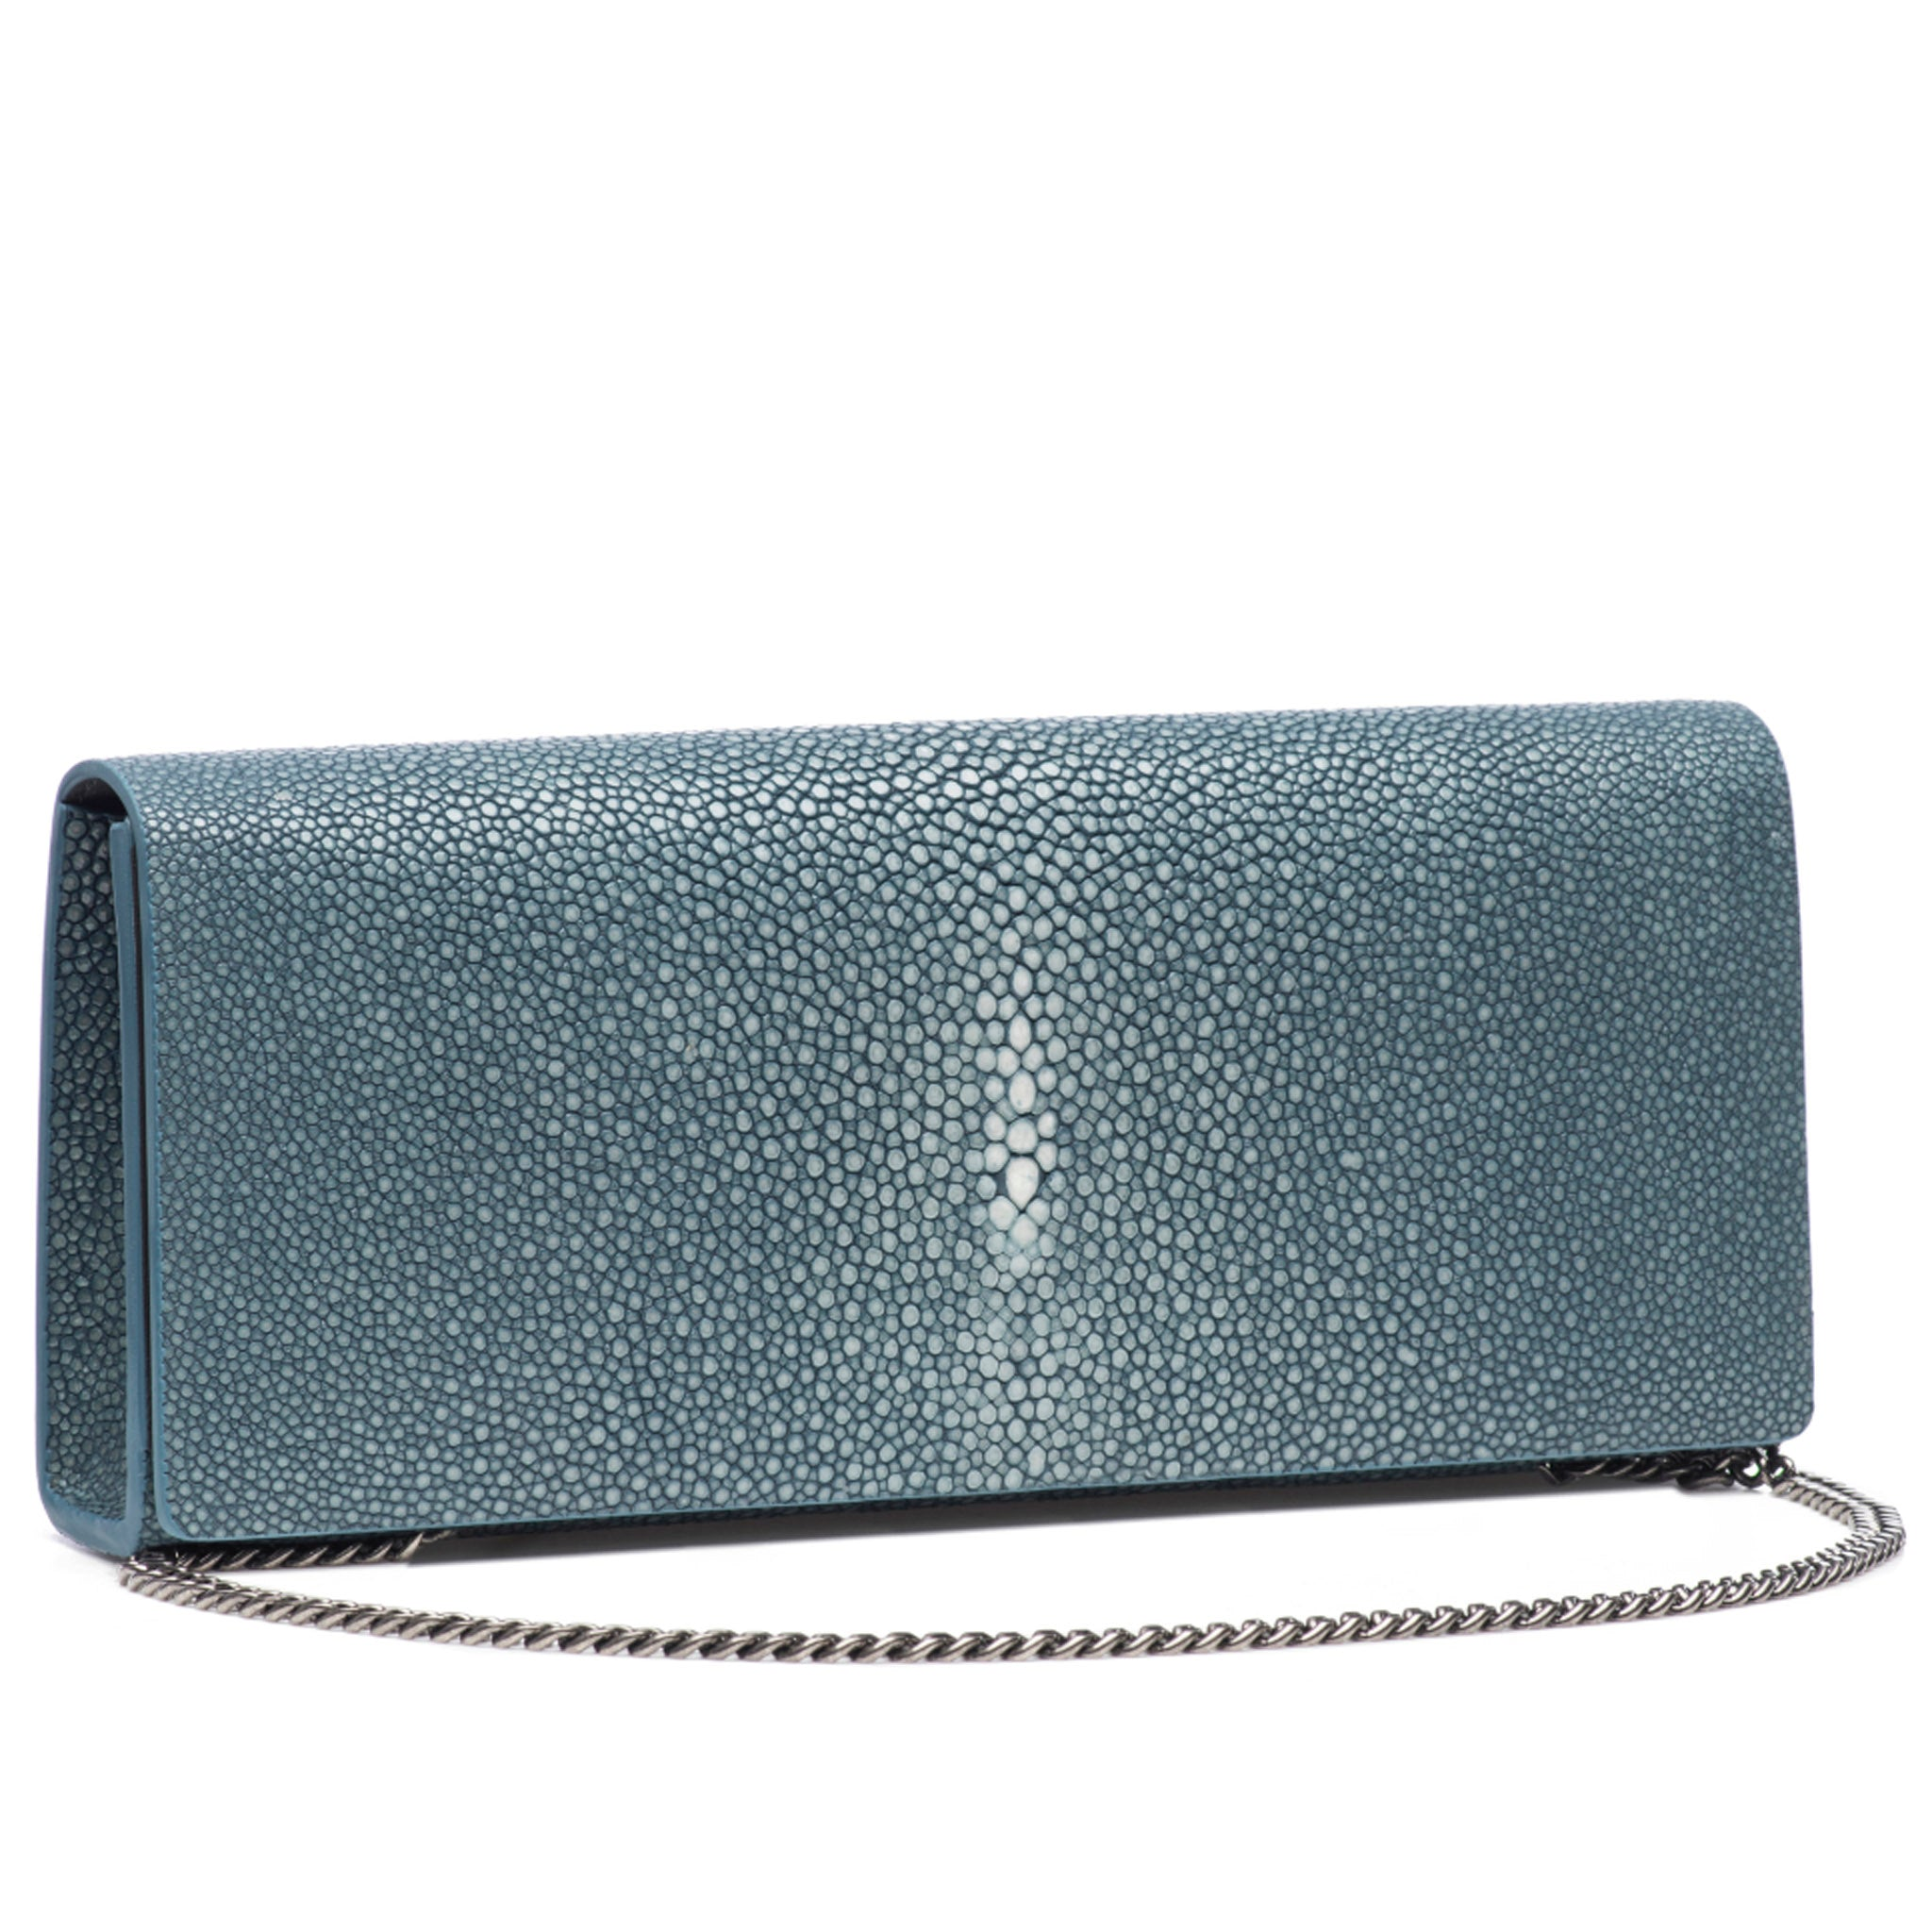 Niagara Shagreen Clutch Bag Front View With Chain Cleo - Vivo Direct